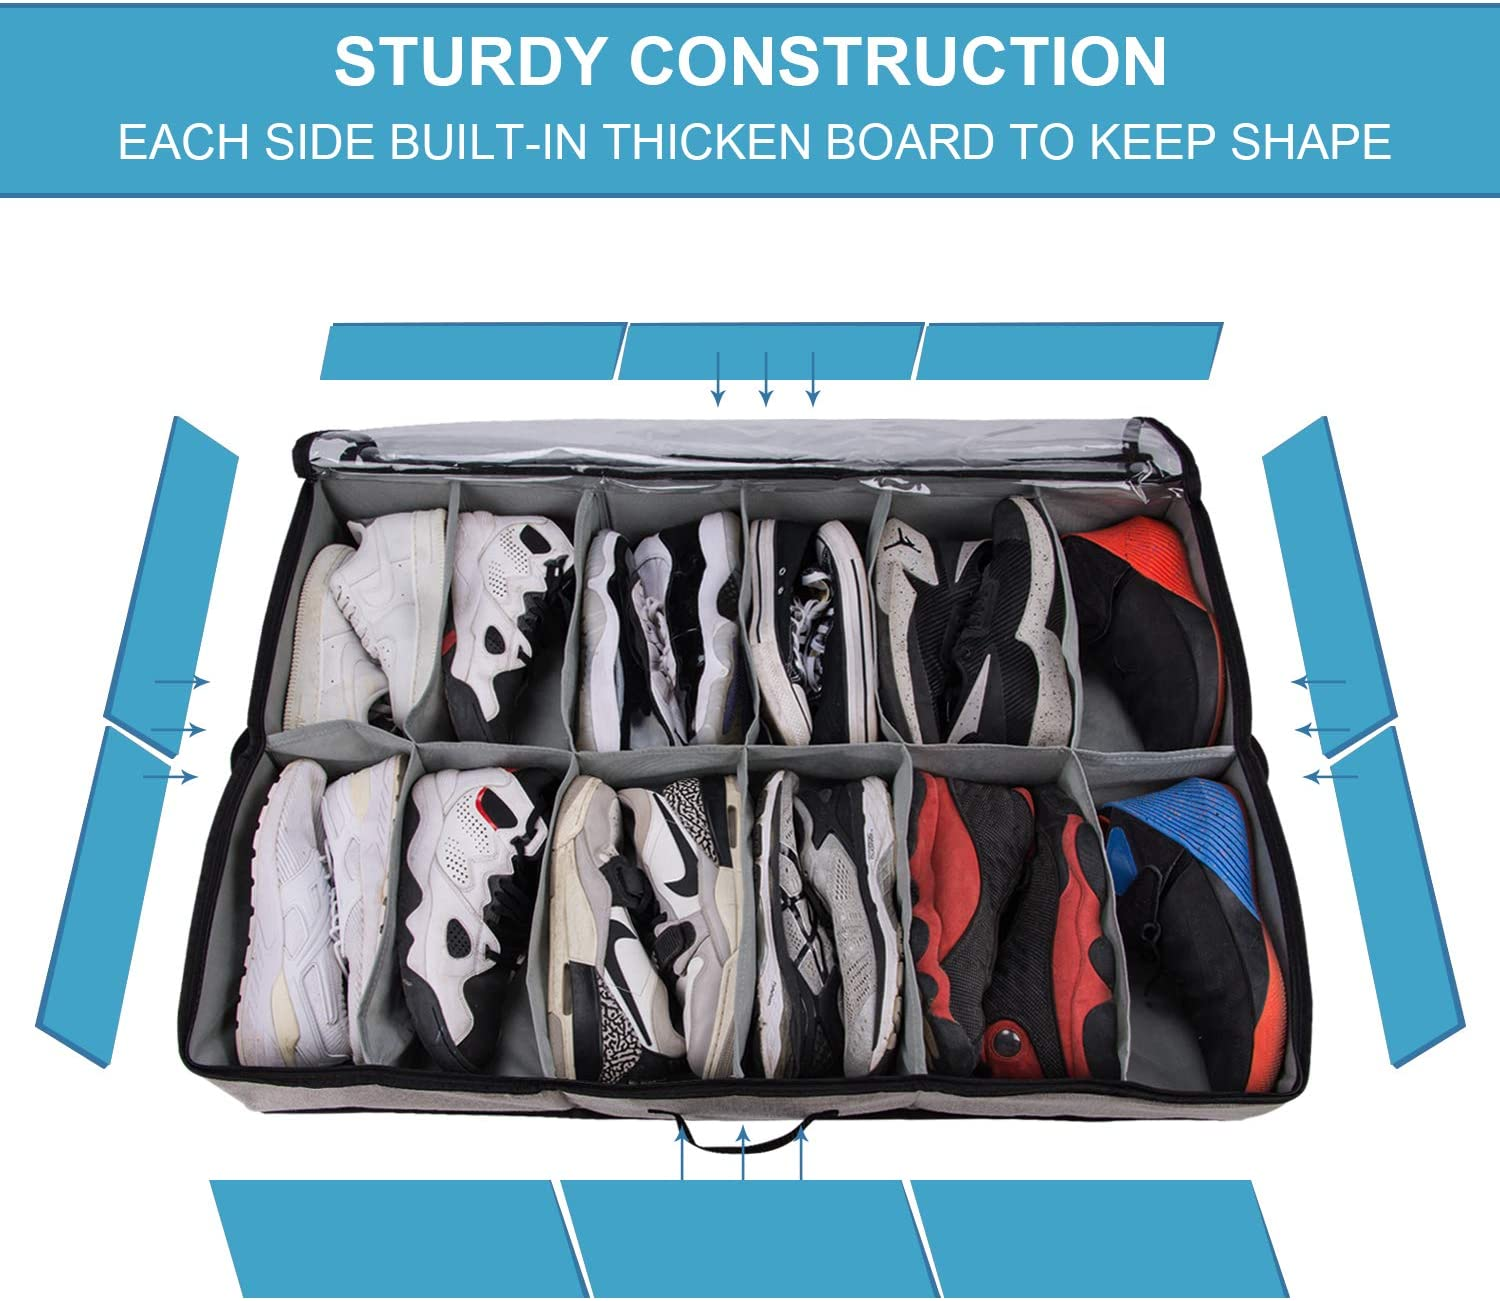 Gray Wrapping Paper Linens,Clothes ACMETOP Jumbo Under Bed Storage Containers Toys 2 Pack Underbed Storage Bags Organizer with Sturdy Construction and Durable Cotton-Linen for Blankets Shoes